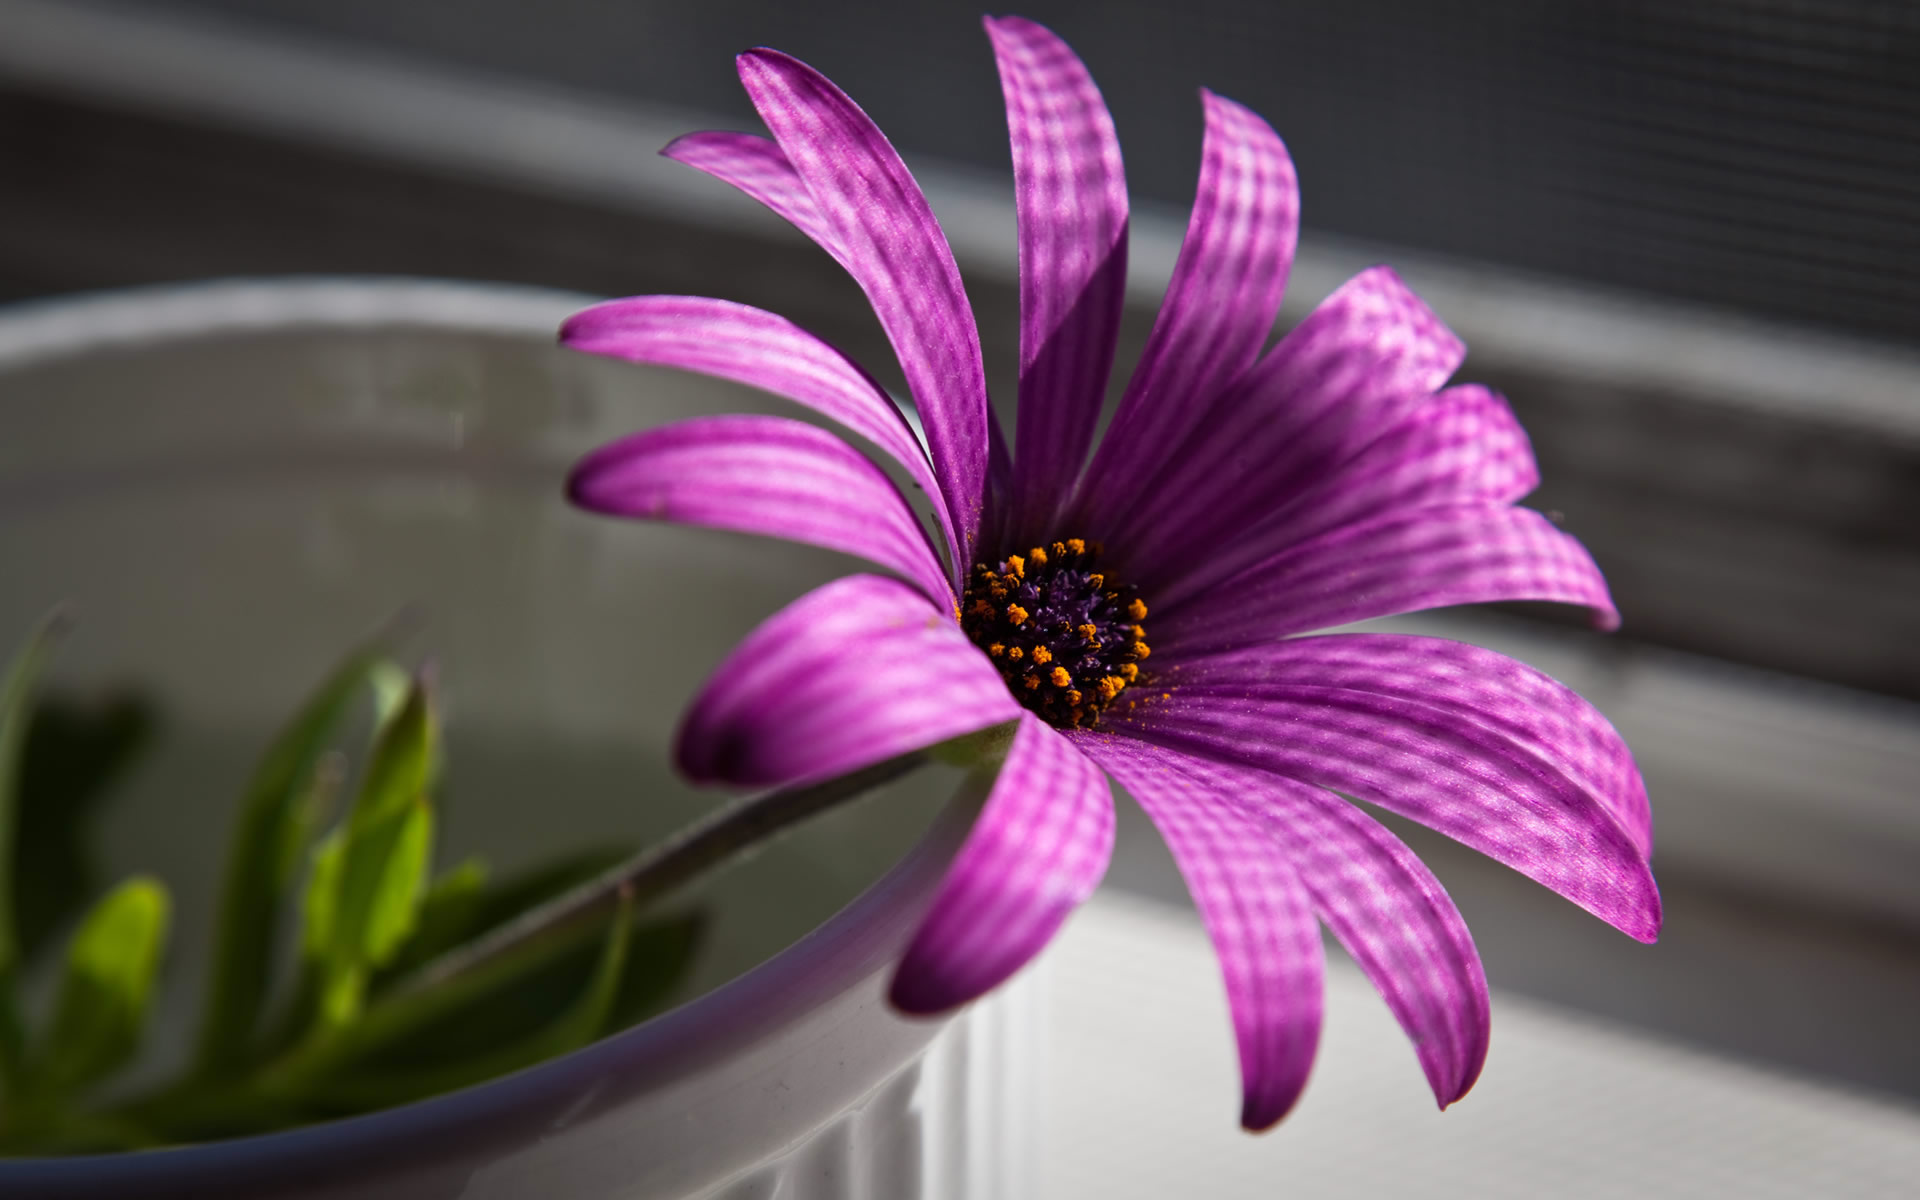 wallpaper download amazing cool download flower hd natural purple 1920x1200